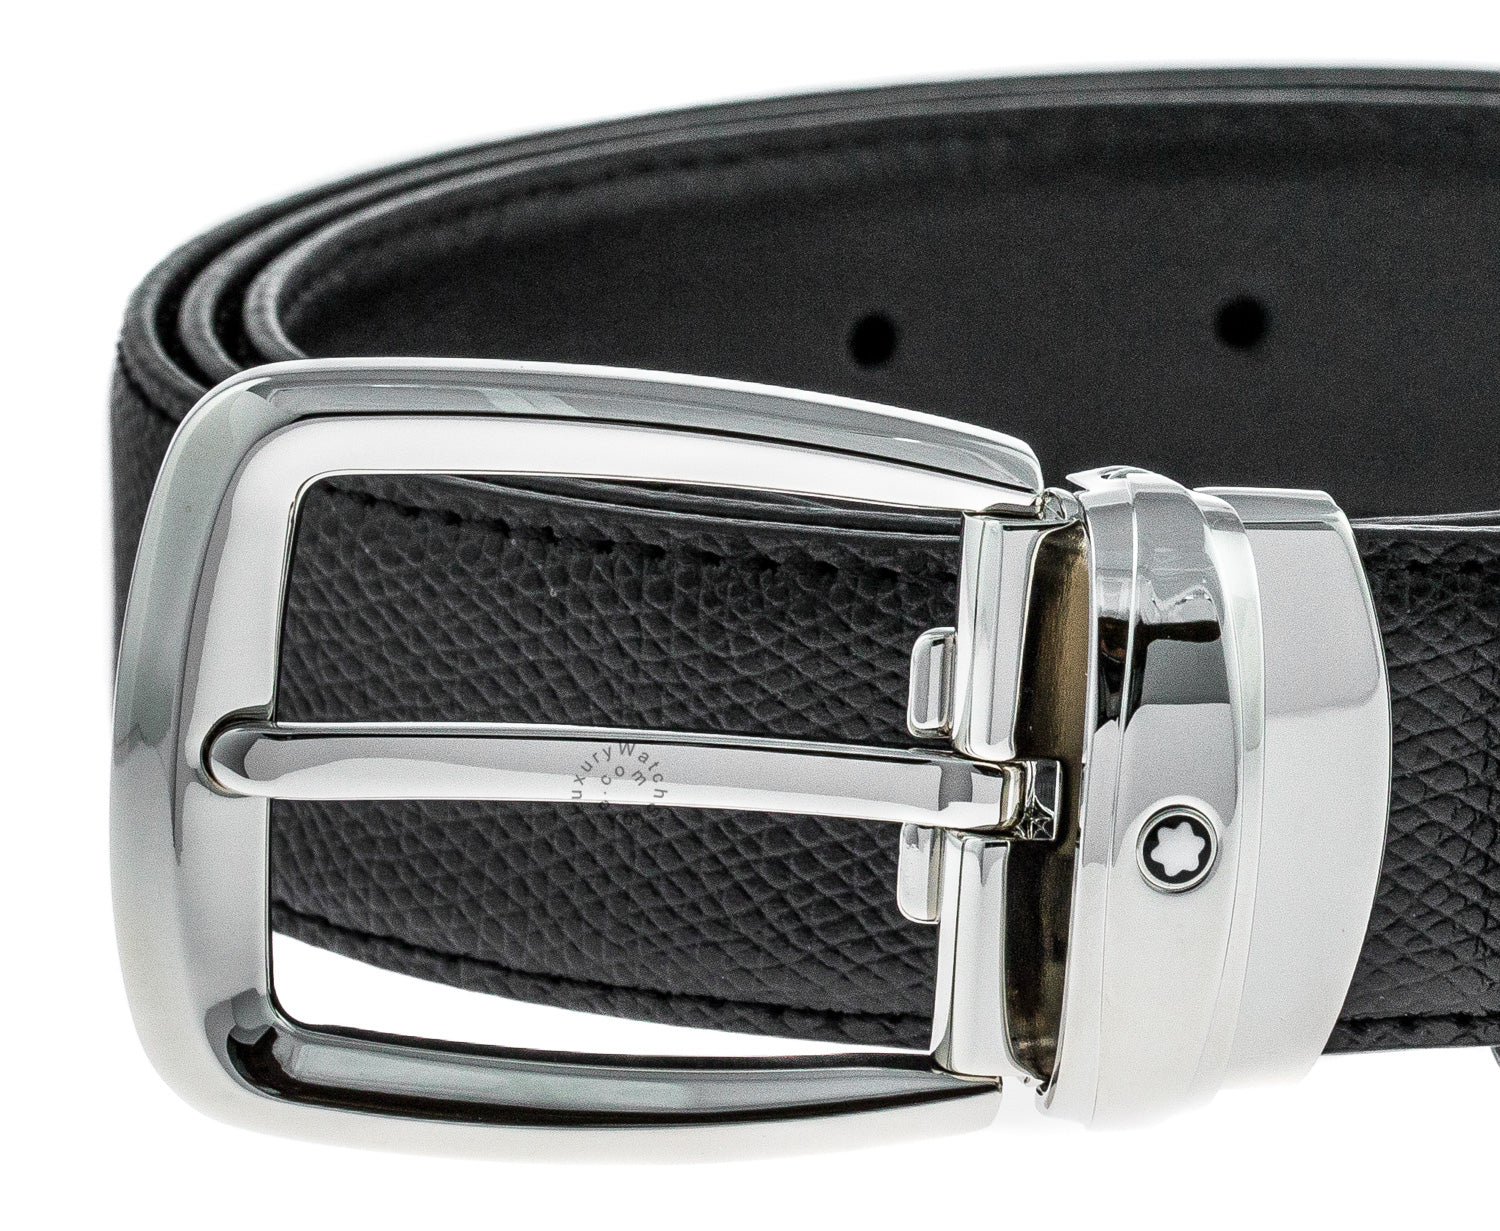 Montblanc Classic Line Trapeze Pin Buckle BLK Leather Men Belt 114387